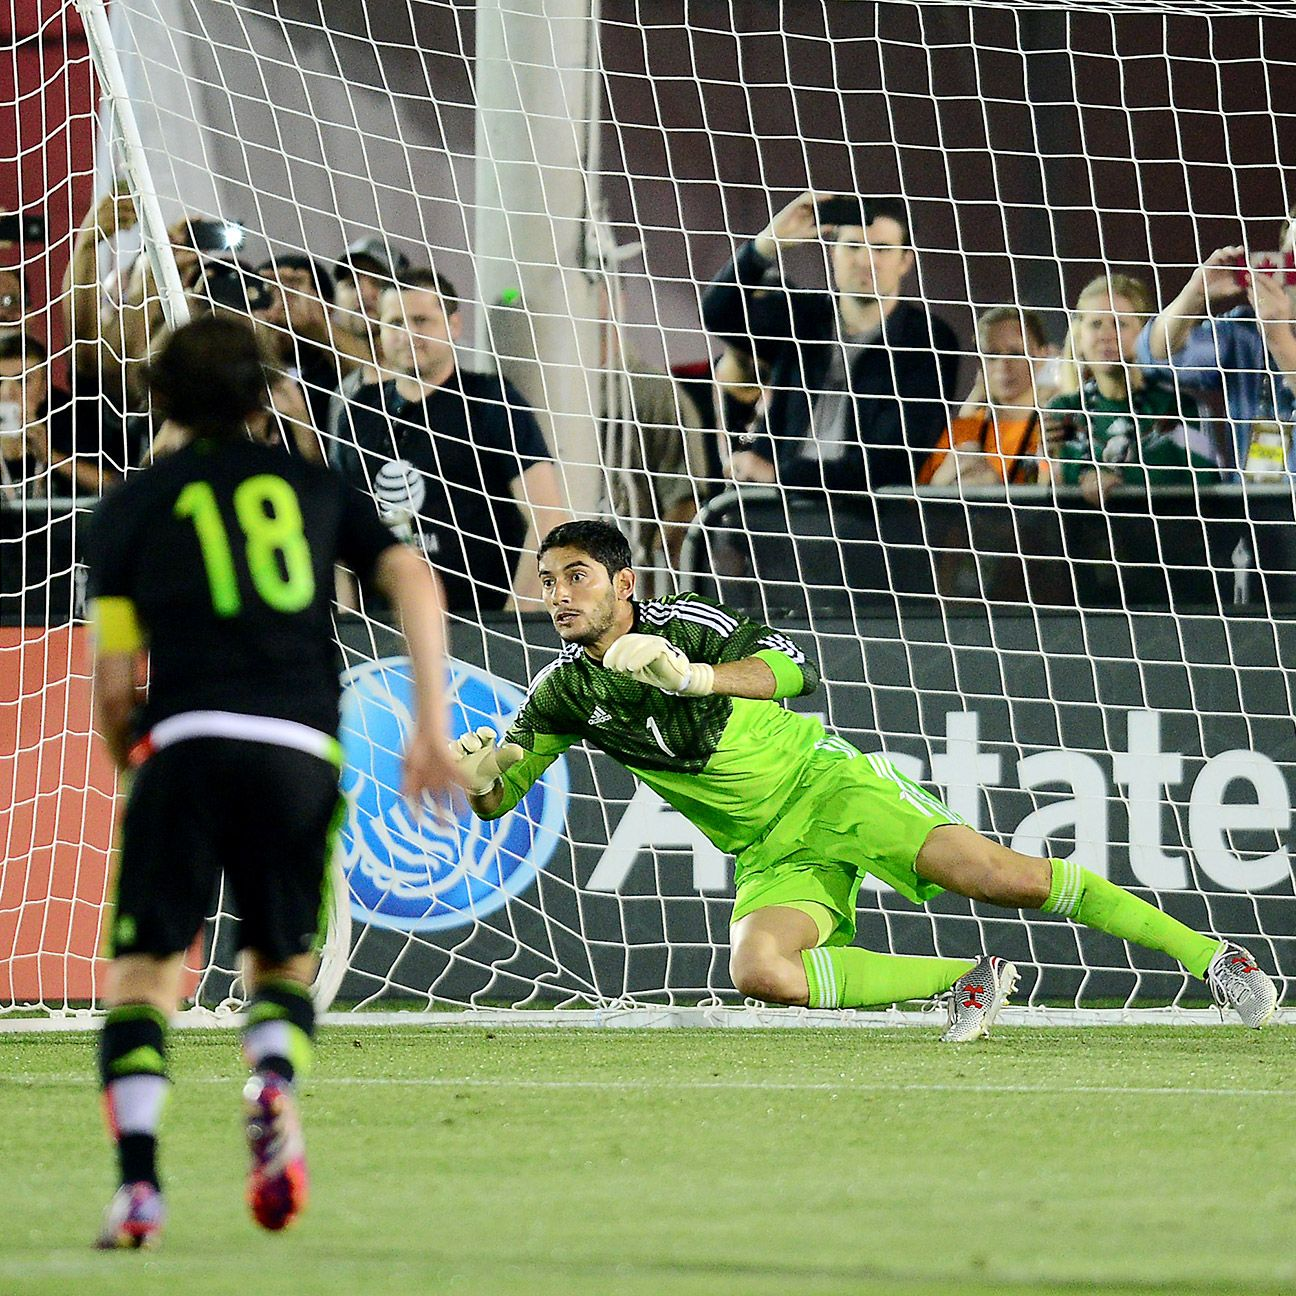 Goalkeeper Jesus Corona capped his stellar night by saving a second half penalty.